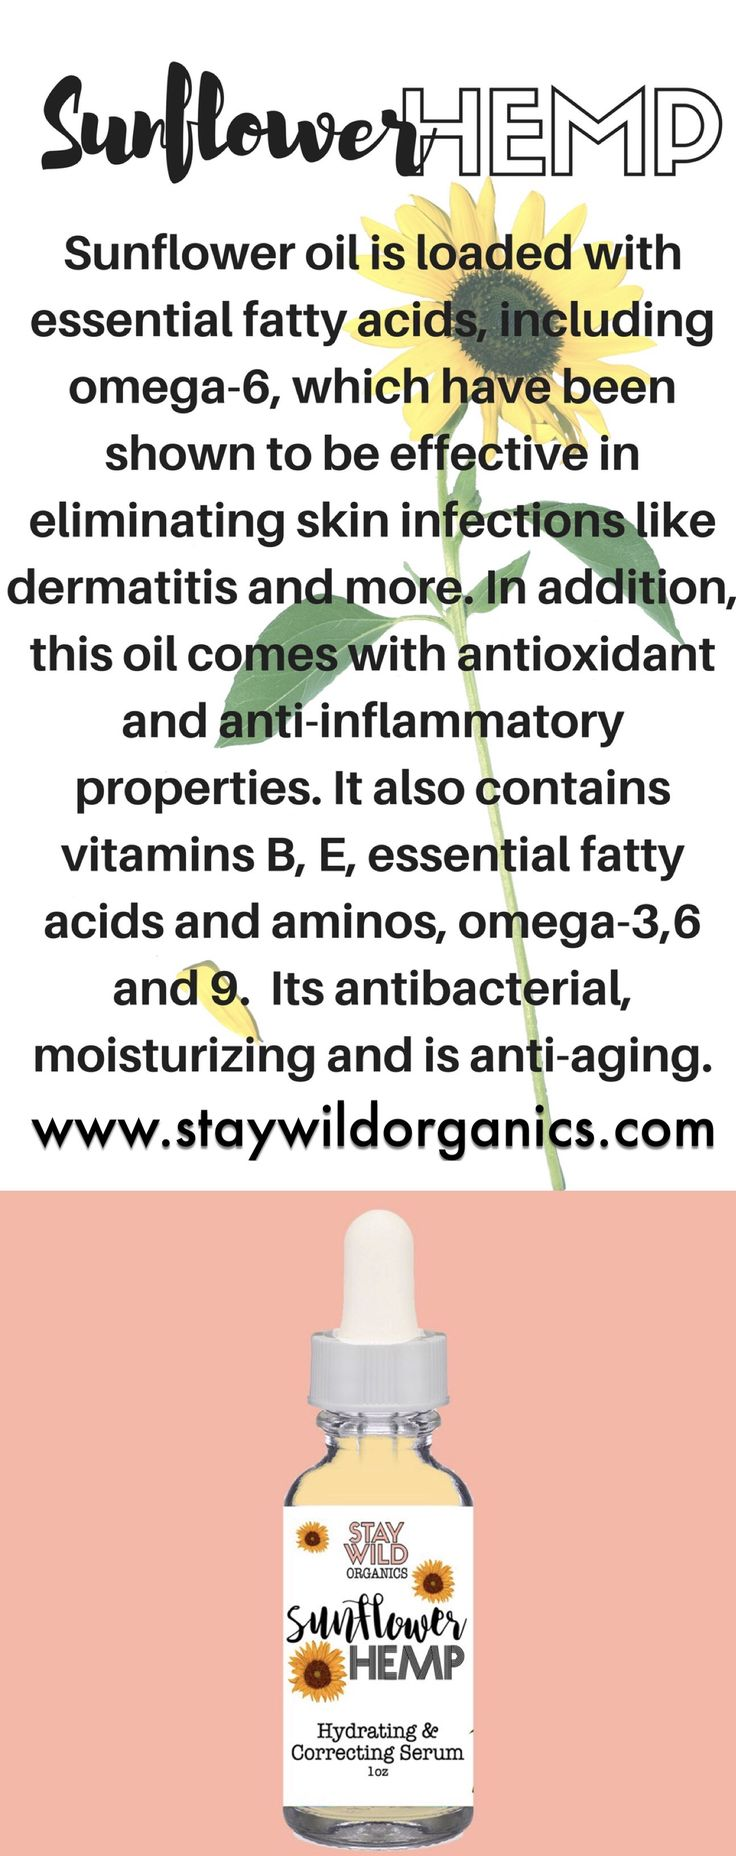 Sunflower oil and hemp seed oil combine to make our serum skin healing and repairing. It helps with wrinkles, dermatitis, sun damage and acne. Staywildorganics.com